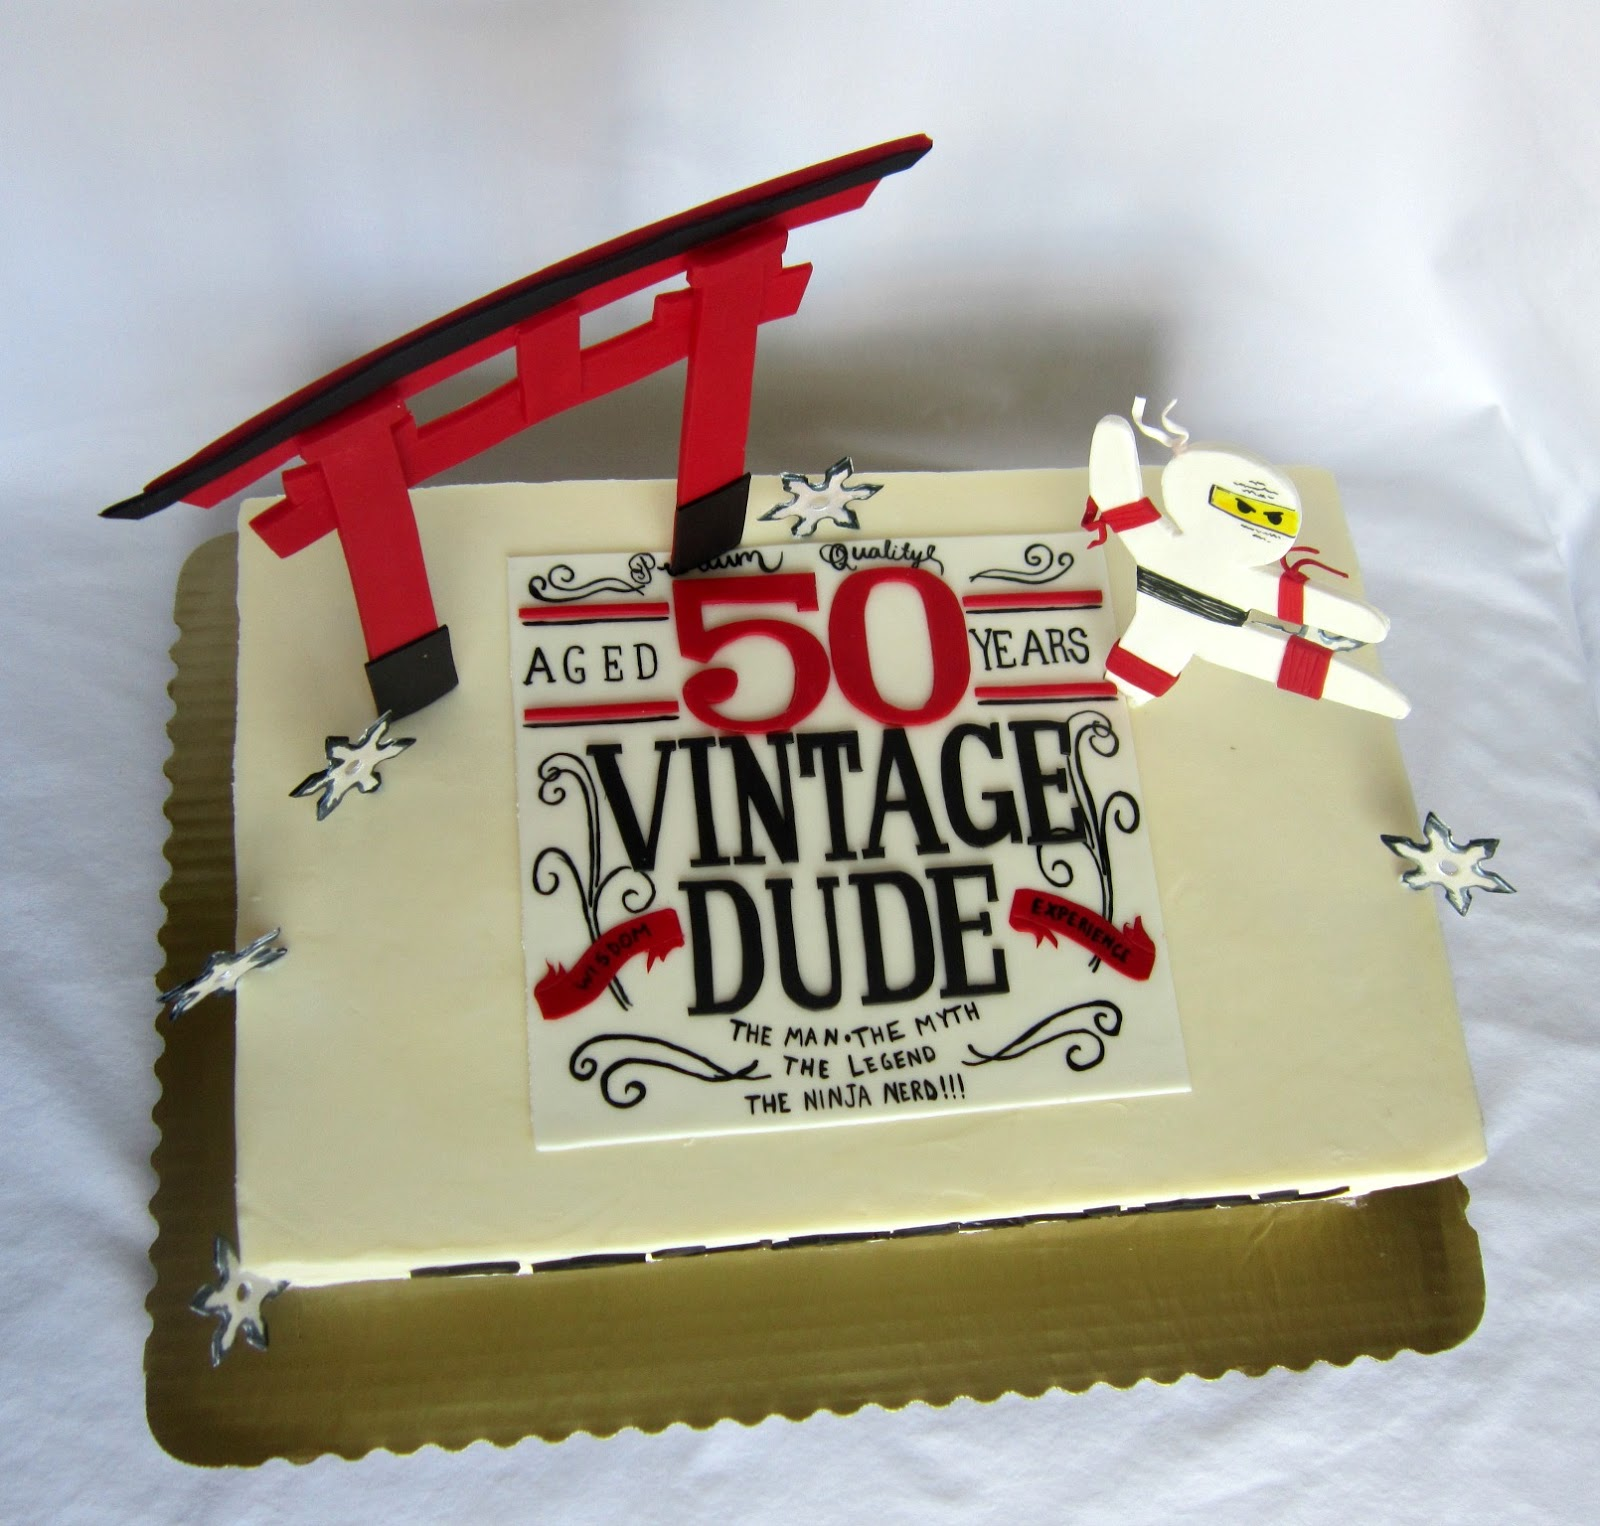 When She Saw The Vintage Dude Birthday Theme Knew That Was Answer Throw In His Love Of Ninjas And We Had A Cake